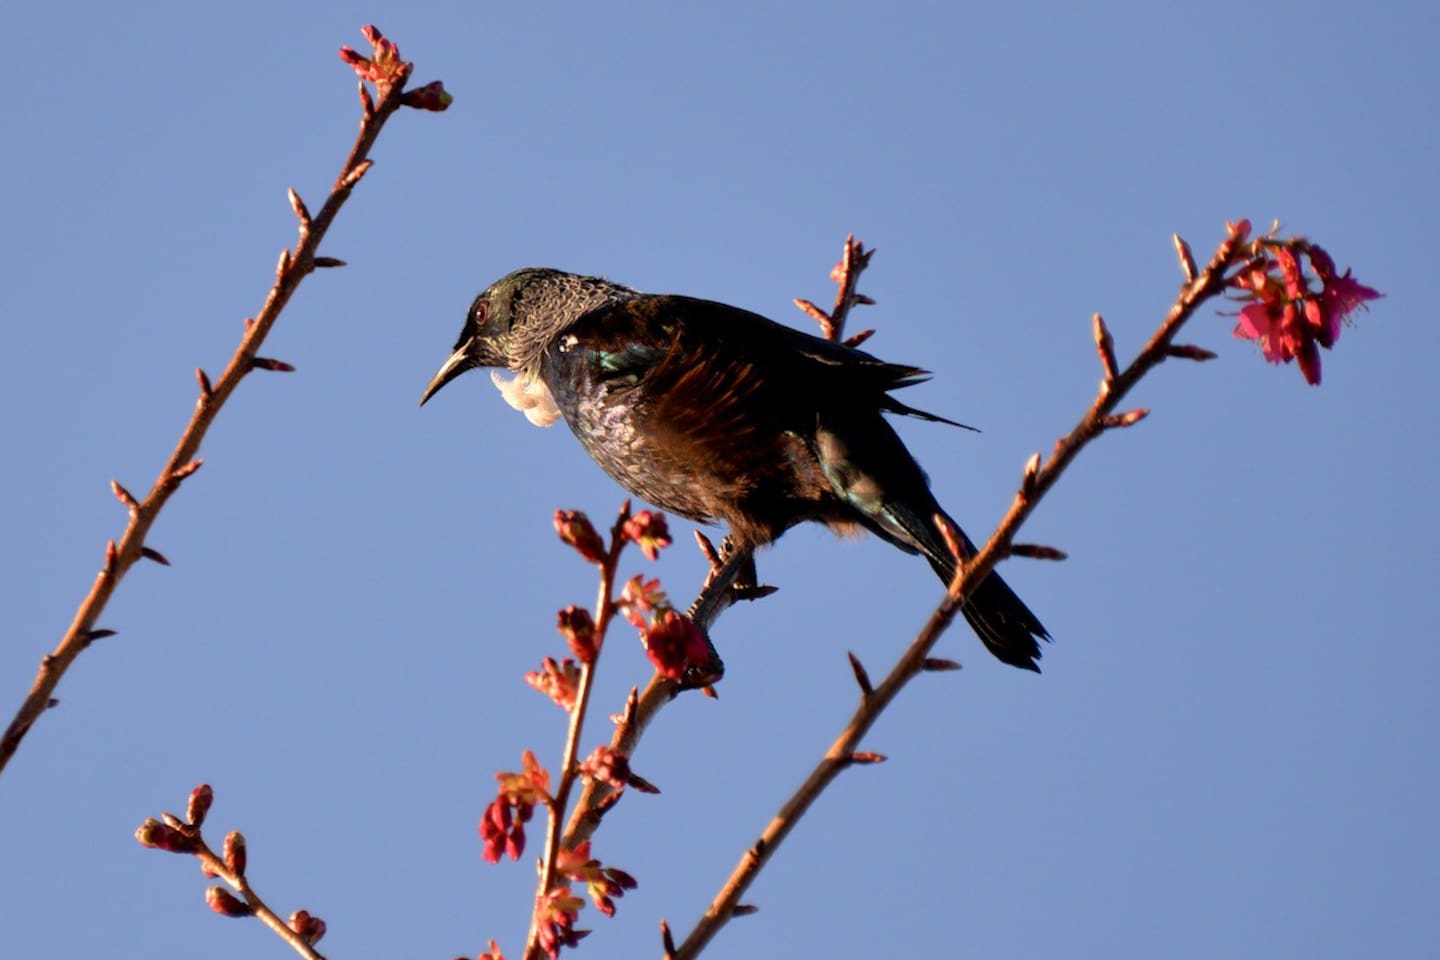 Enjoy the native tuis that are abundant in our private garden areas here and in Tainui reserve. I snapped this tui enjoying nectar in our cherry blossom trees this year. There are a number of other native birds here including Ruru - morepork (native NZ owls).